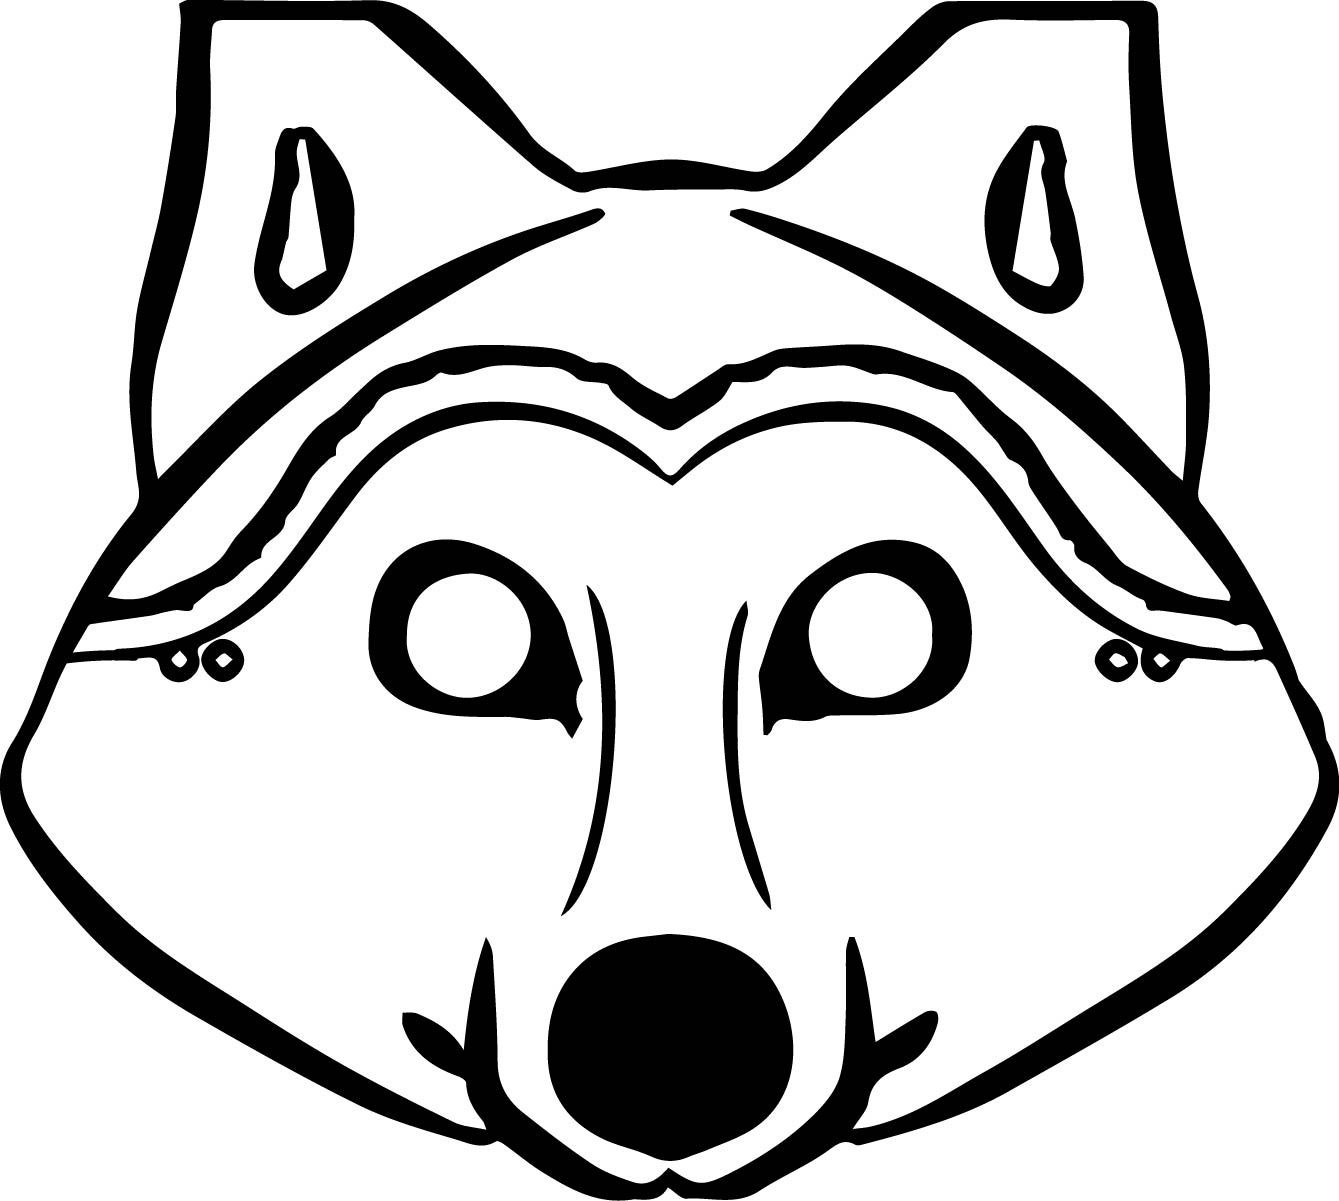 Awesome 3 Pigs Wolf Mask Coloring Pages   Wecoloringpage   Wolf Mask - Free Printable Wolf Mask